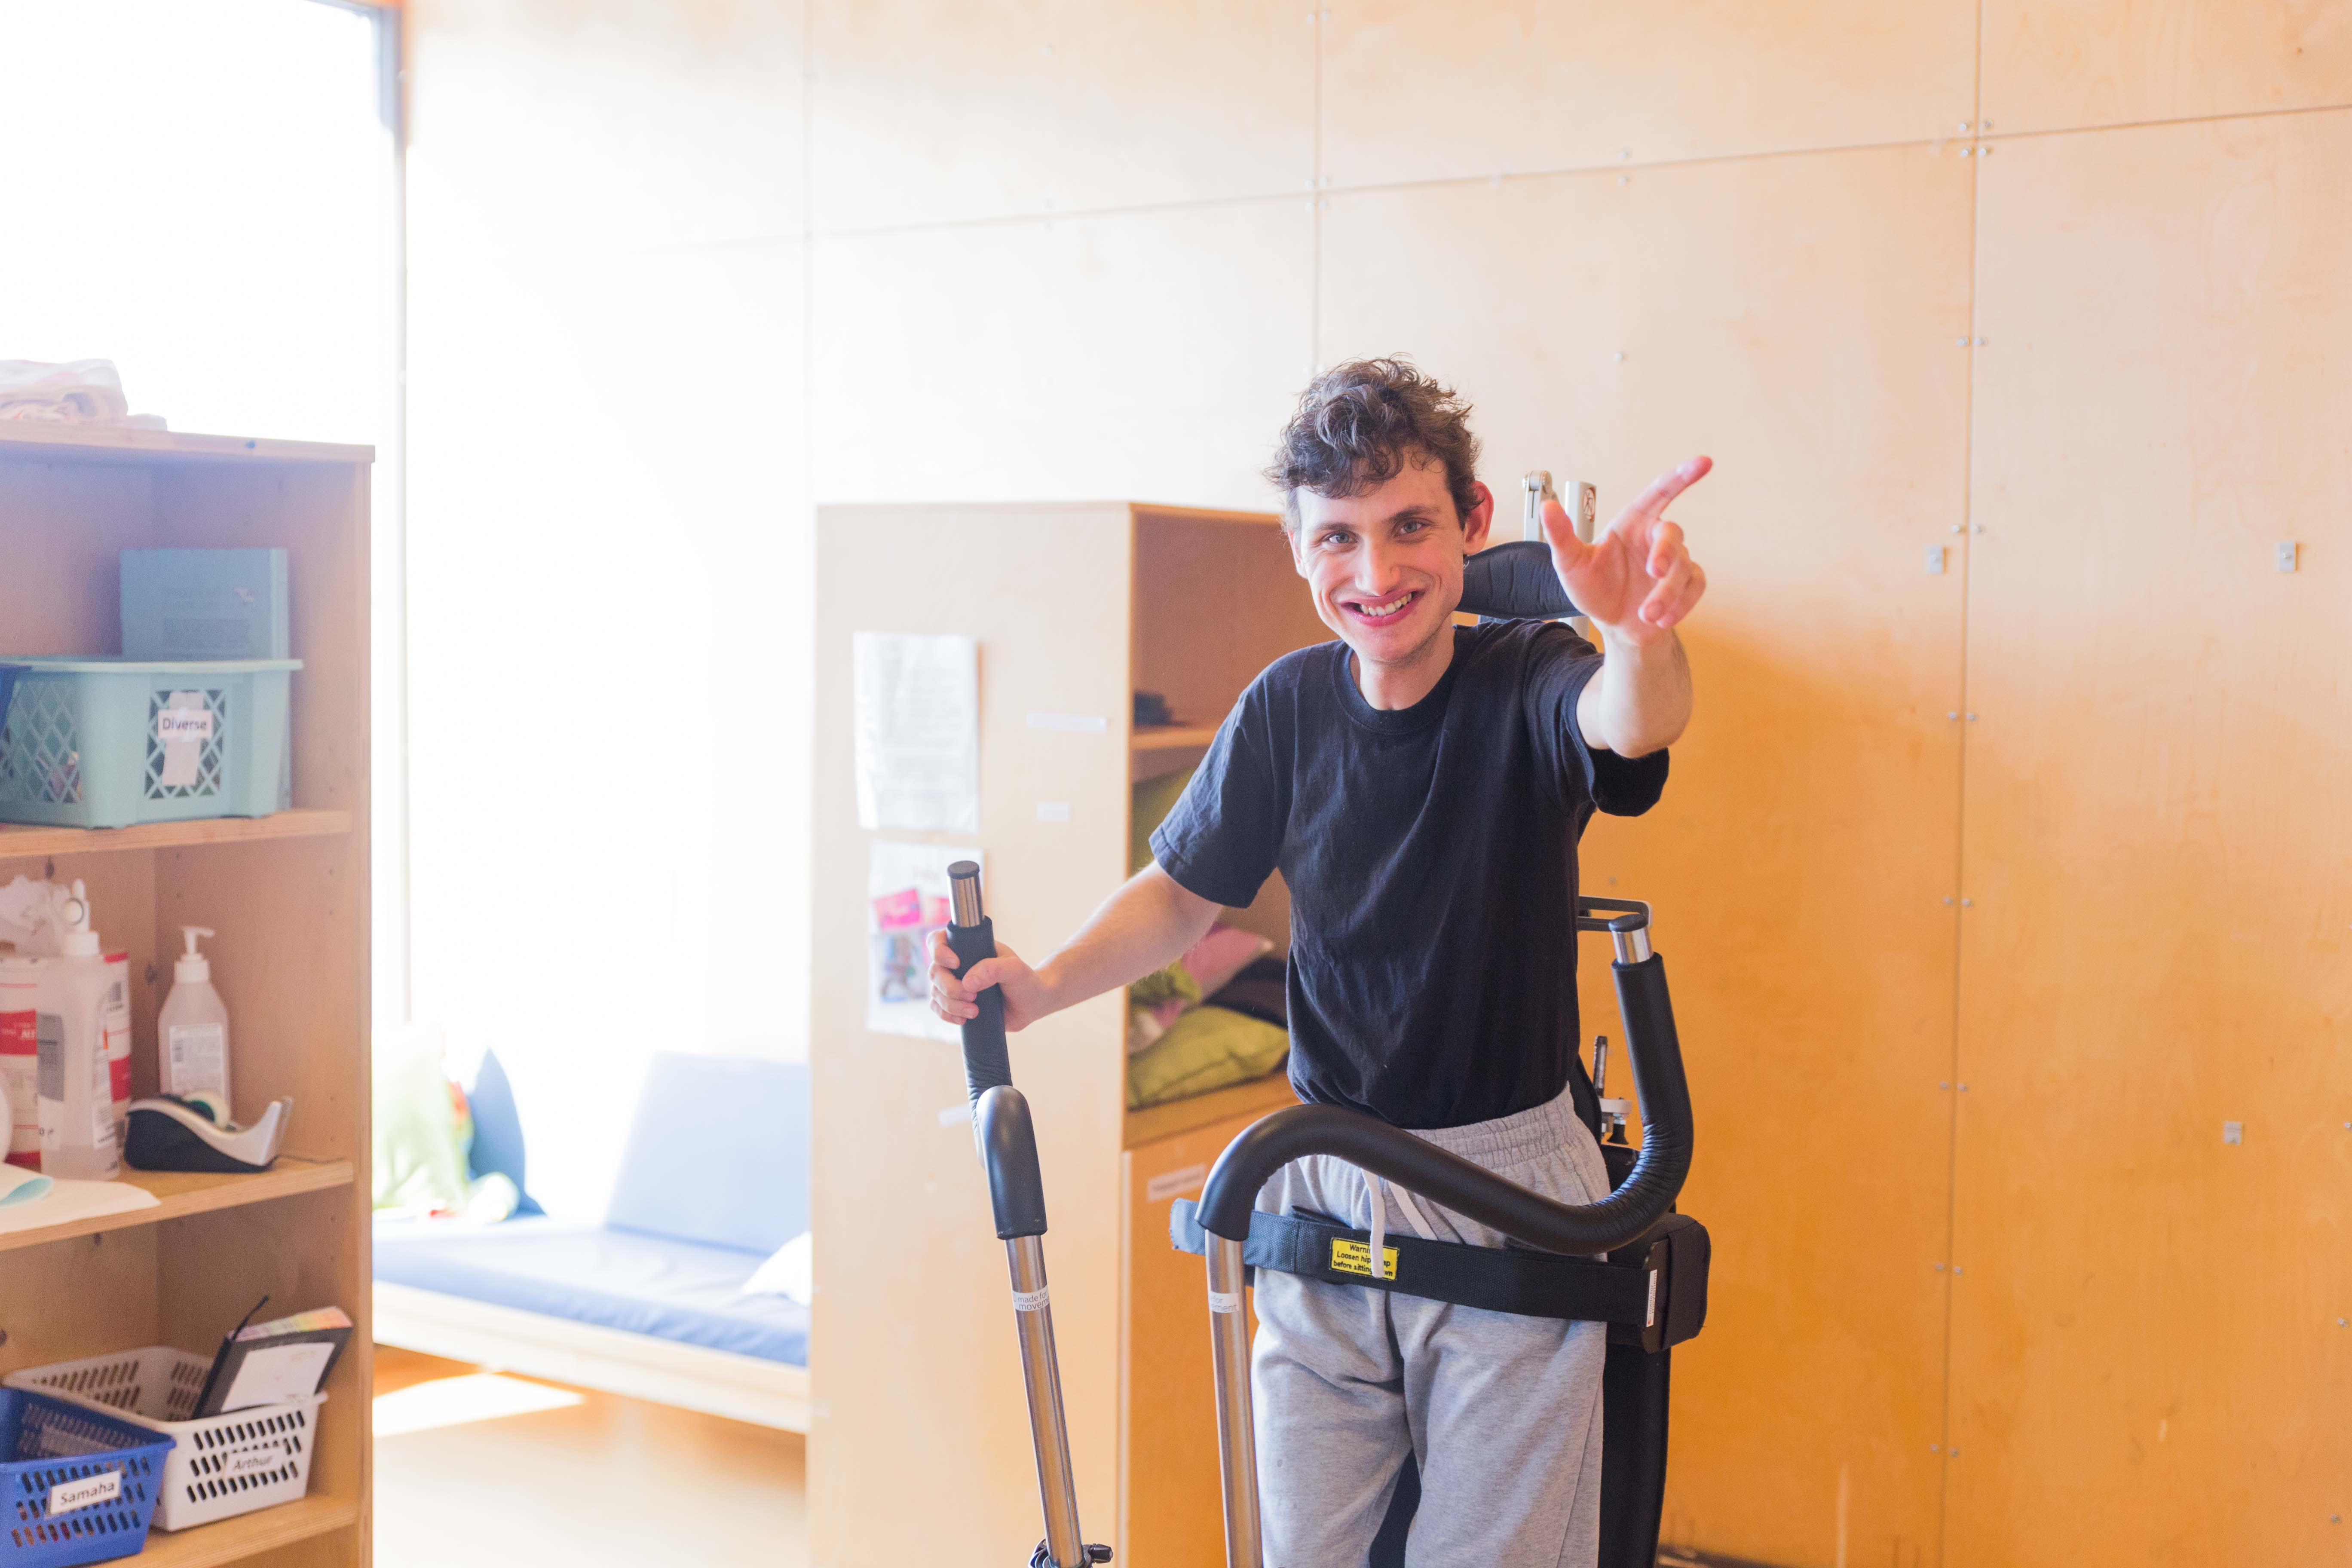 Physical Therapy for Adults with Cerebral Palsy